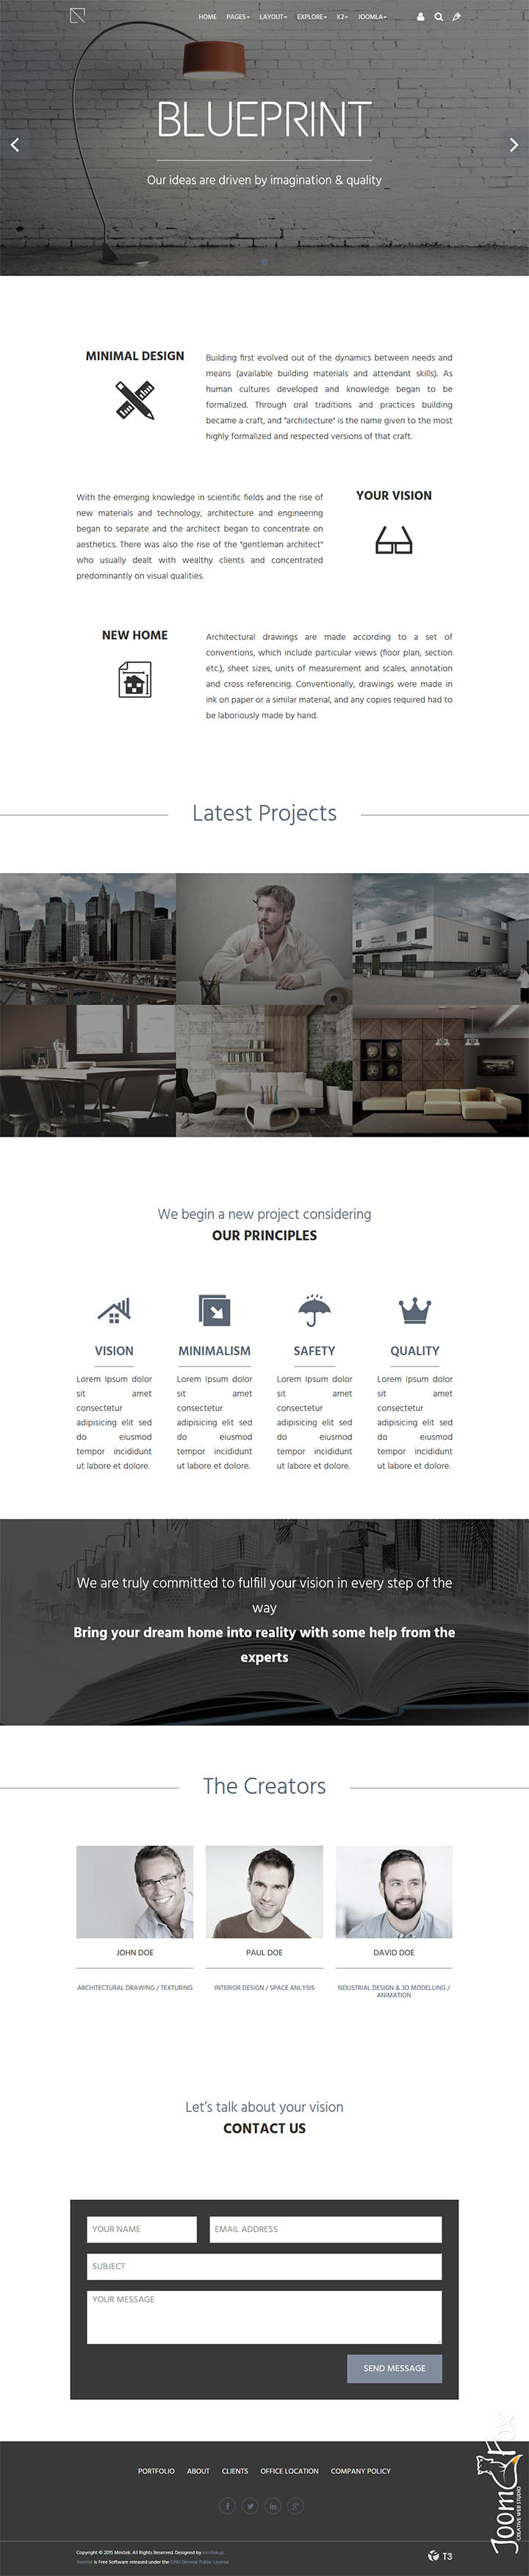 Minitek blueprint v302 the architectural company template joomla image of template minitek blueprint malvernweather Images